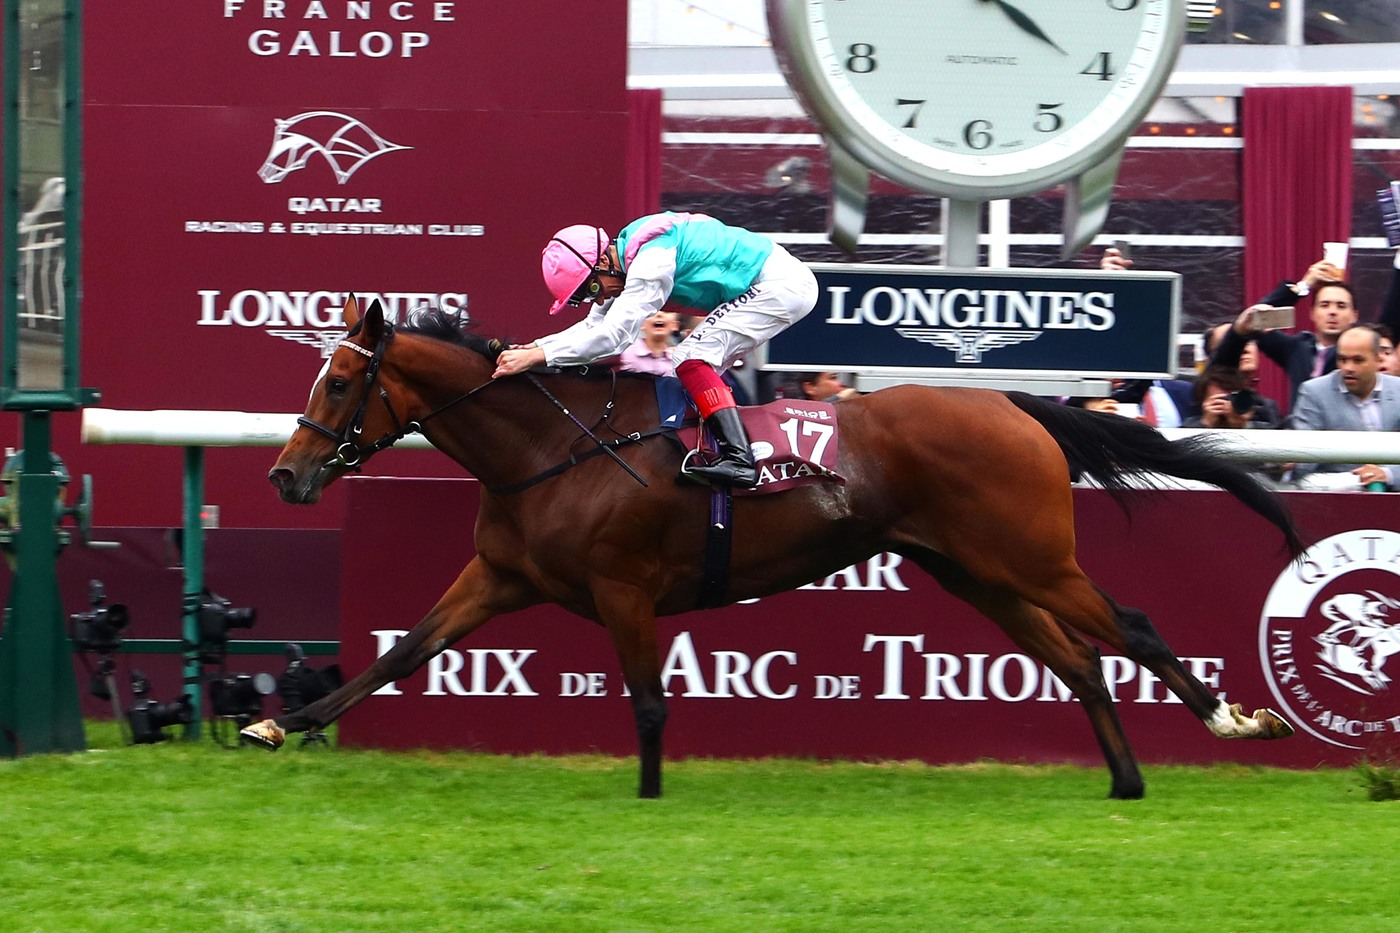 Longines Flat Racing Event: Longines' precision served the prestigious Qatar Prix de l'Arc de Triomphe 4